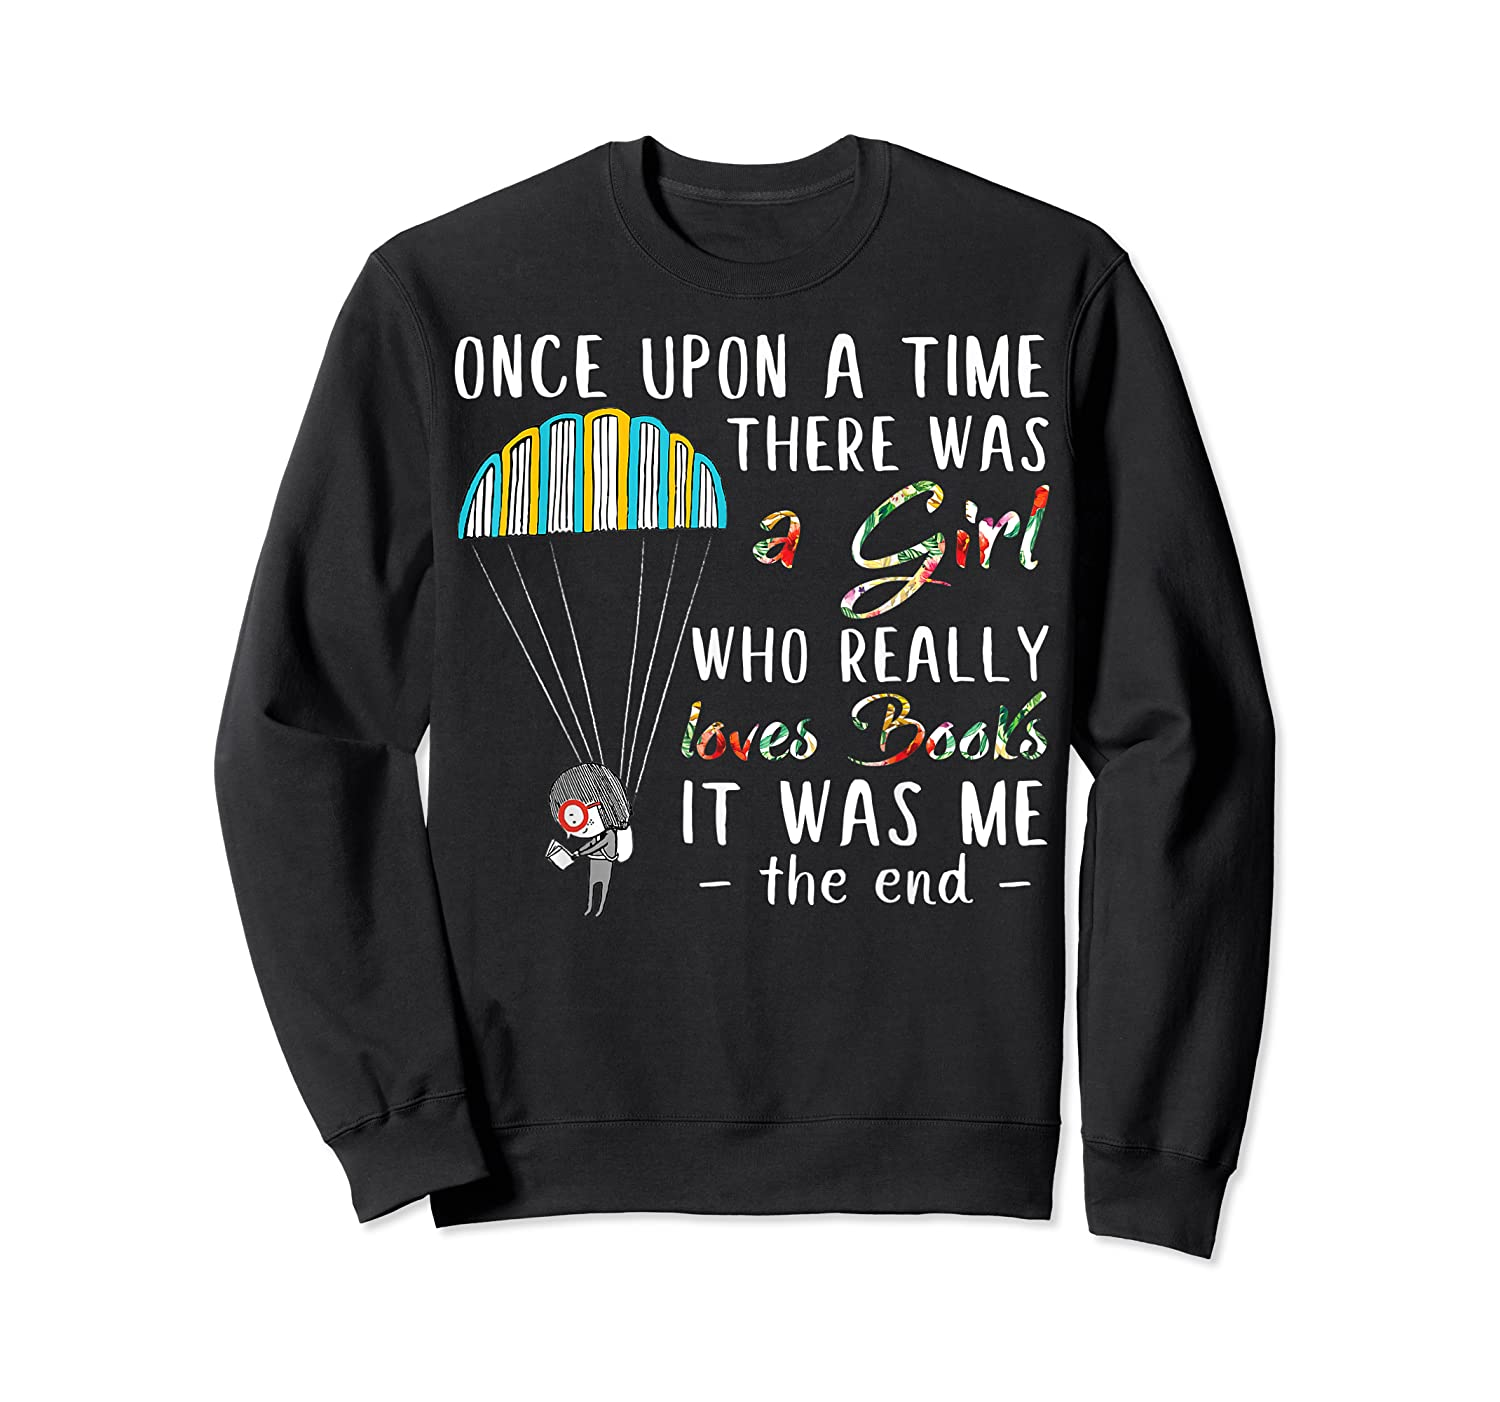 Once Upon A Time There Was A Girl Who Really Loves Books Ts Shirts Crewneck Sweater